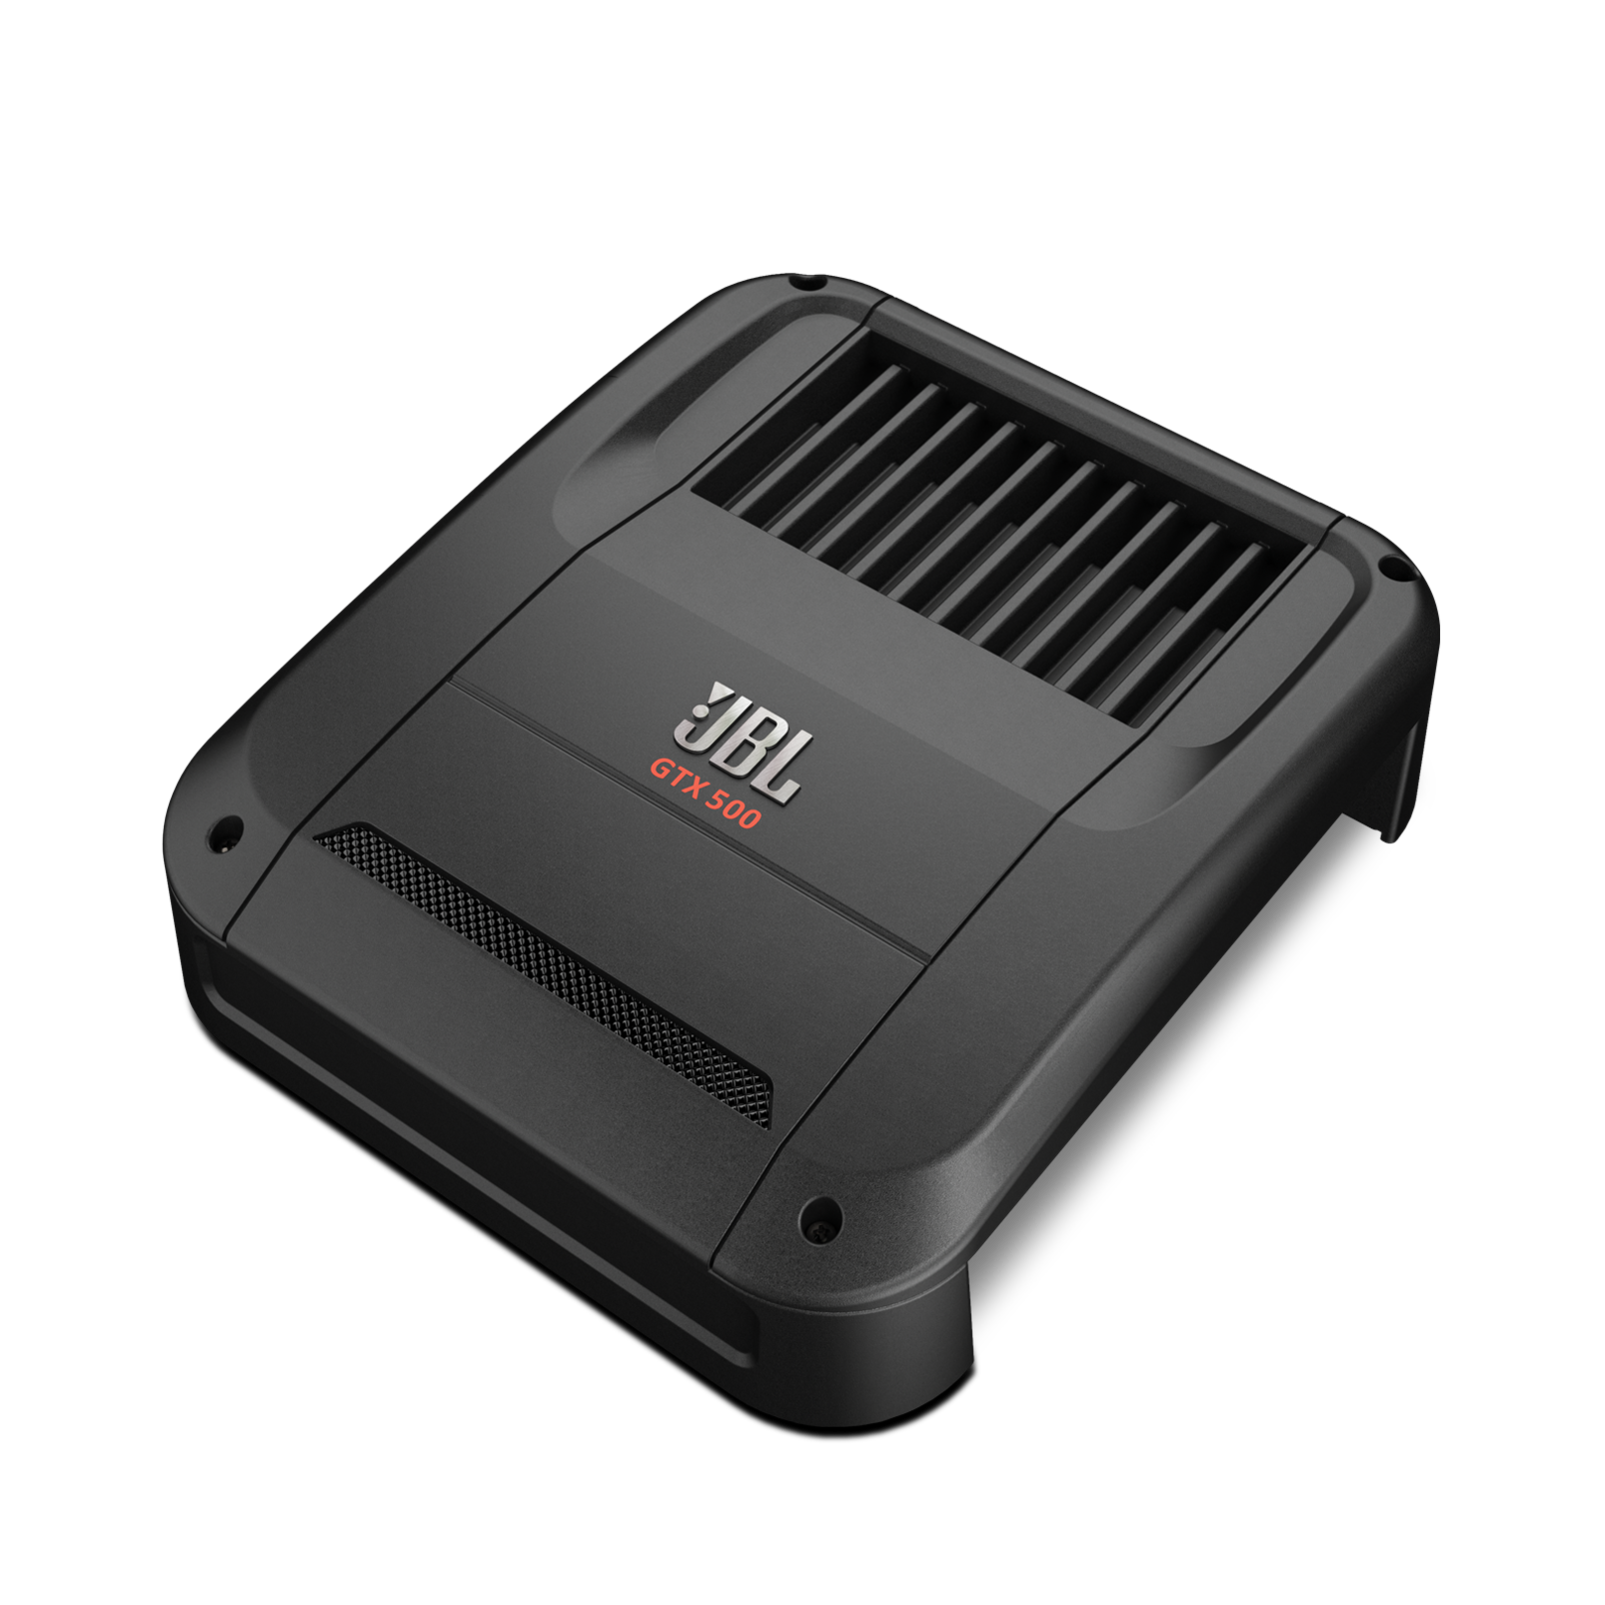 Gtx 500 750 Watt Mono Subwoofer Amplifier Power Supply To A Car For Subwoofers In Your Home Images